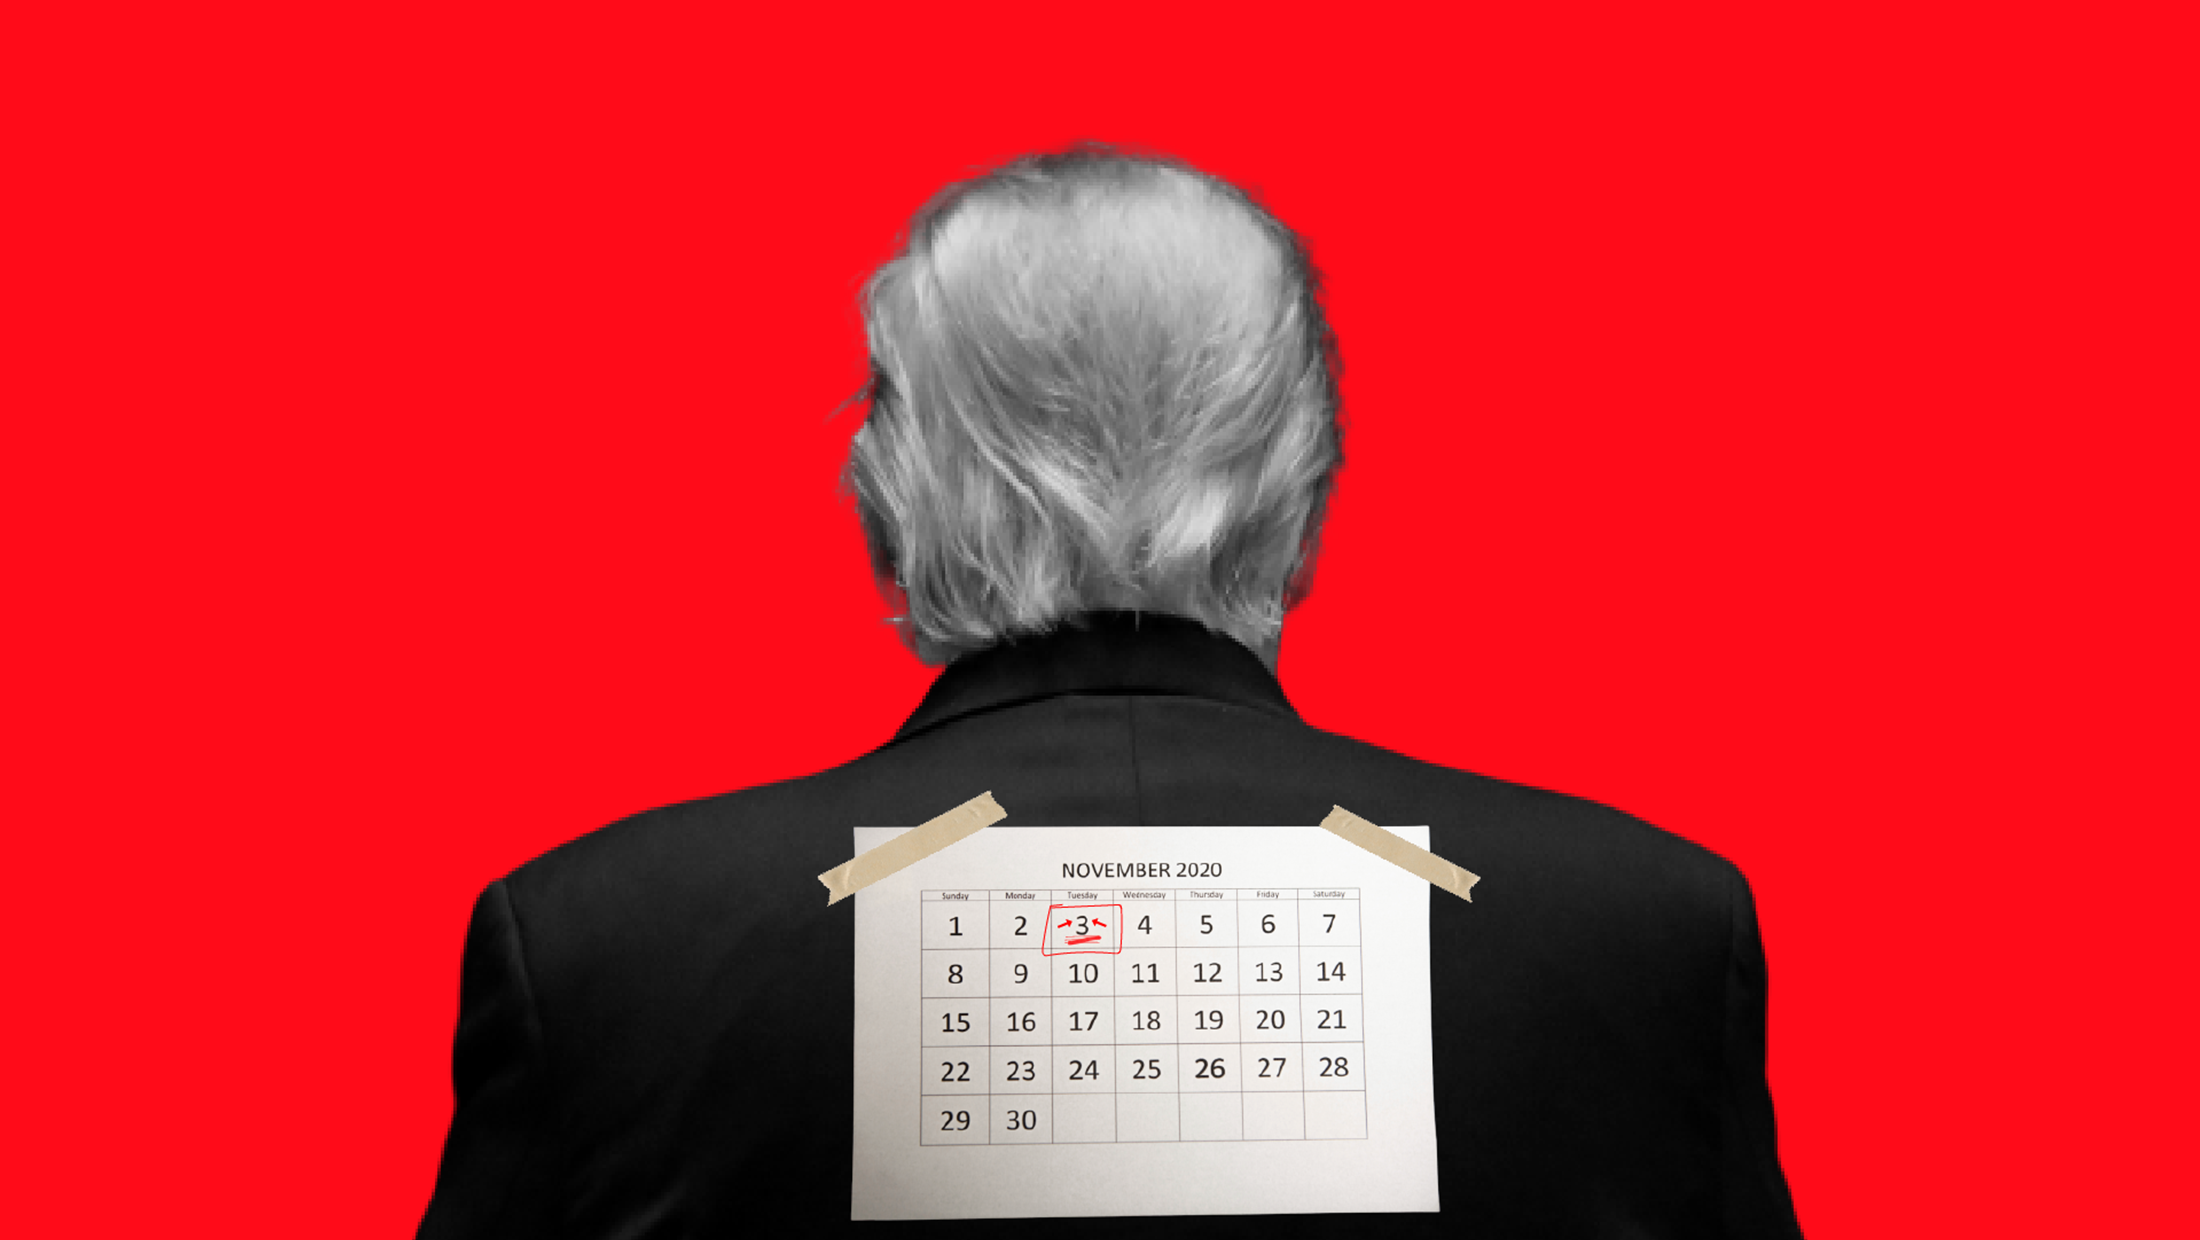 A November 2020 calendar with Tuesday, November 3 circled in red, taped to the back of President Donald Trump